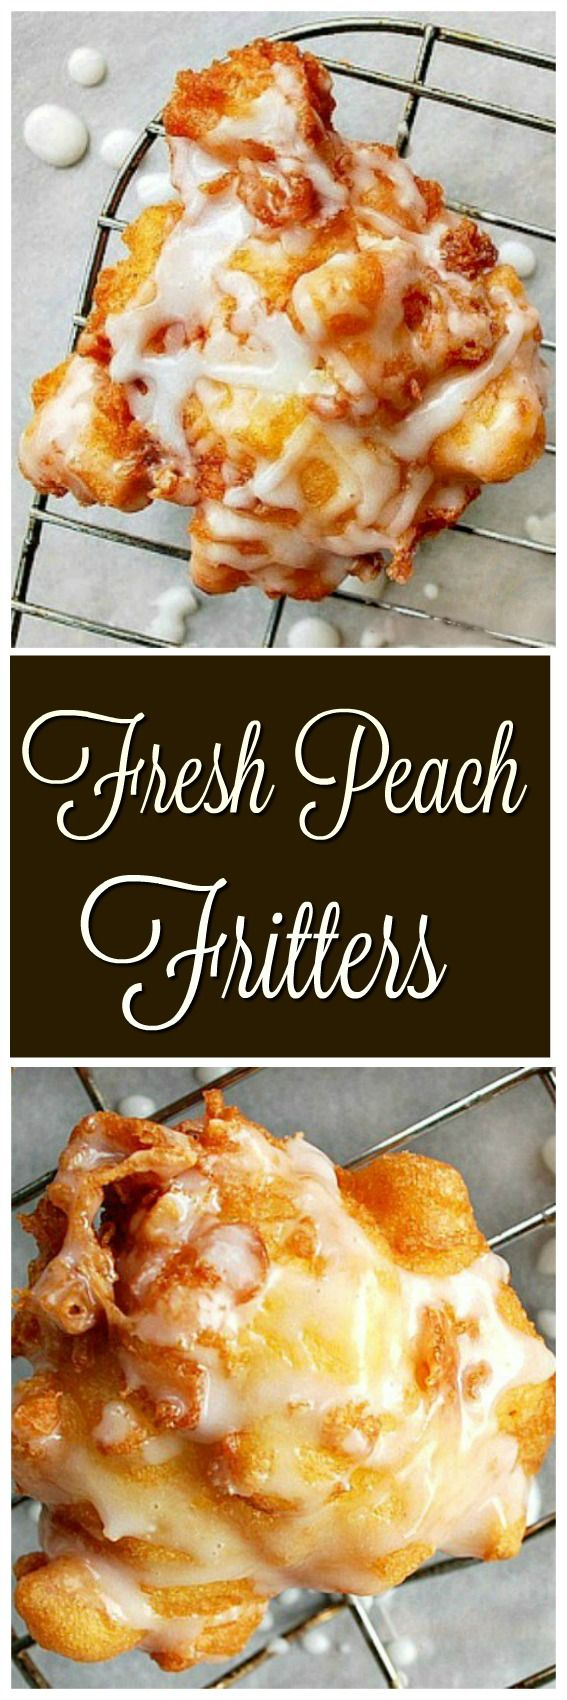 Fluffy, soft, moist and loaded with fresh peaches...Peach Fritters! Pinterest: @annahpyra